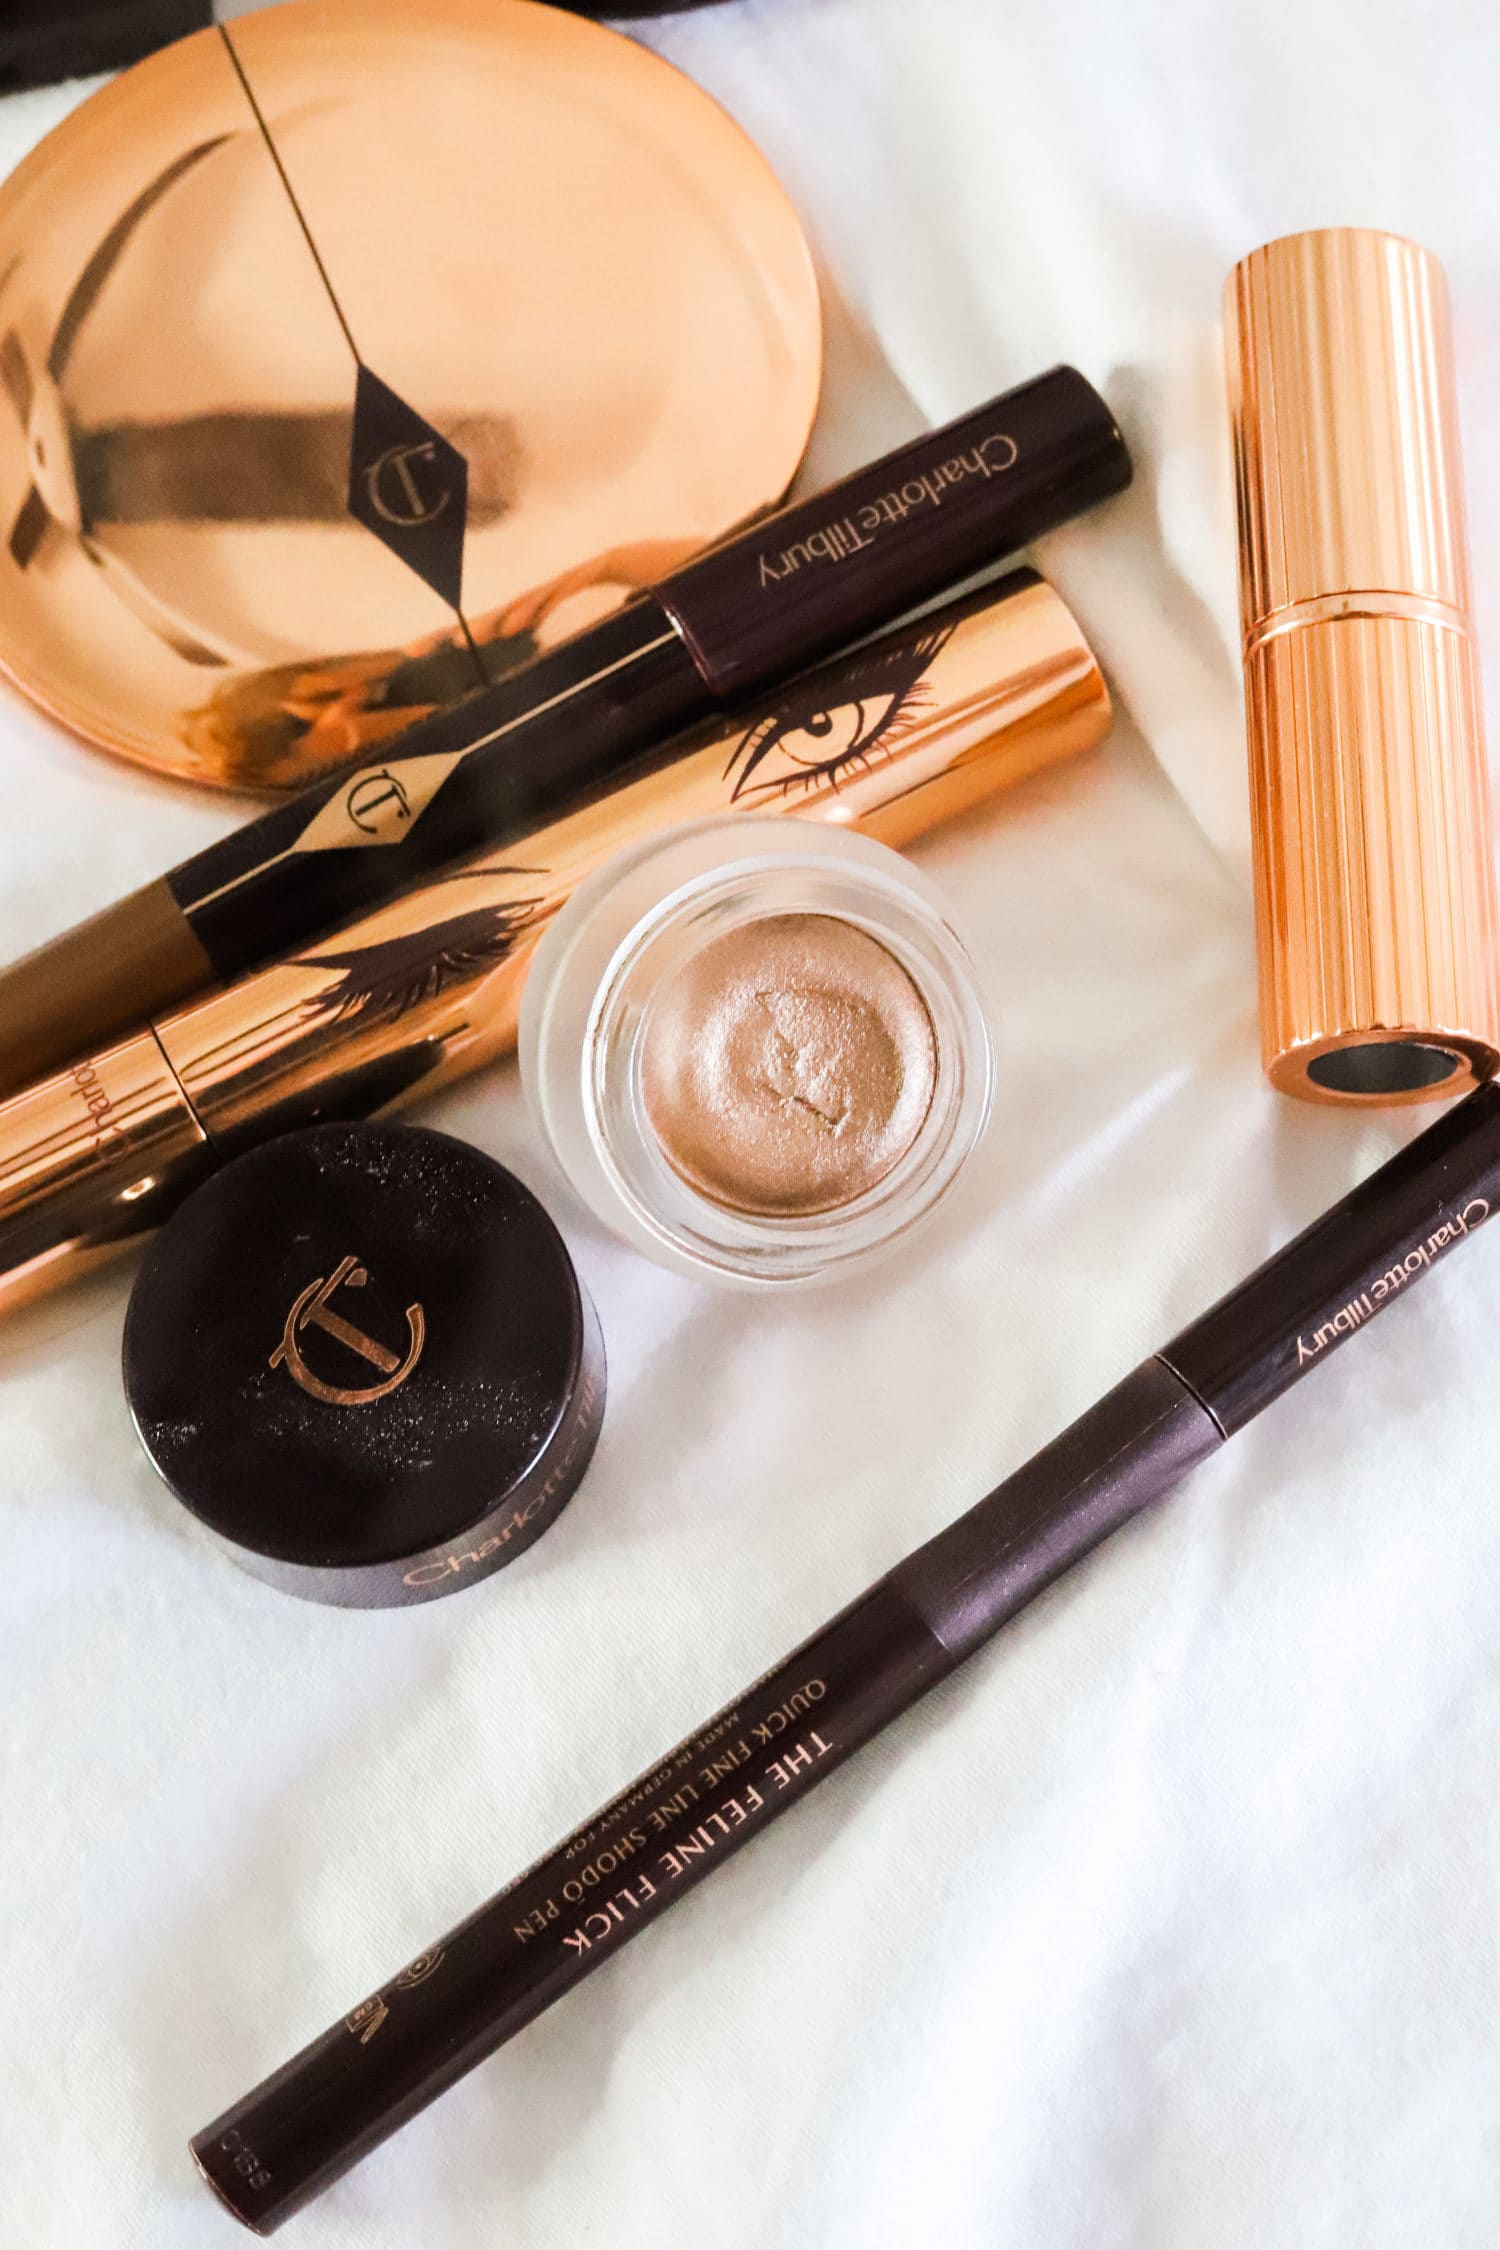 Charlotte Tilbury Makeup Review: Is It